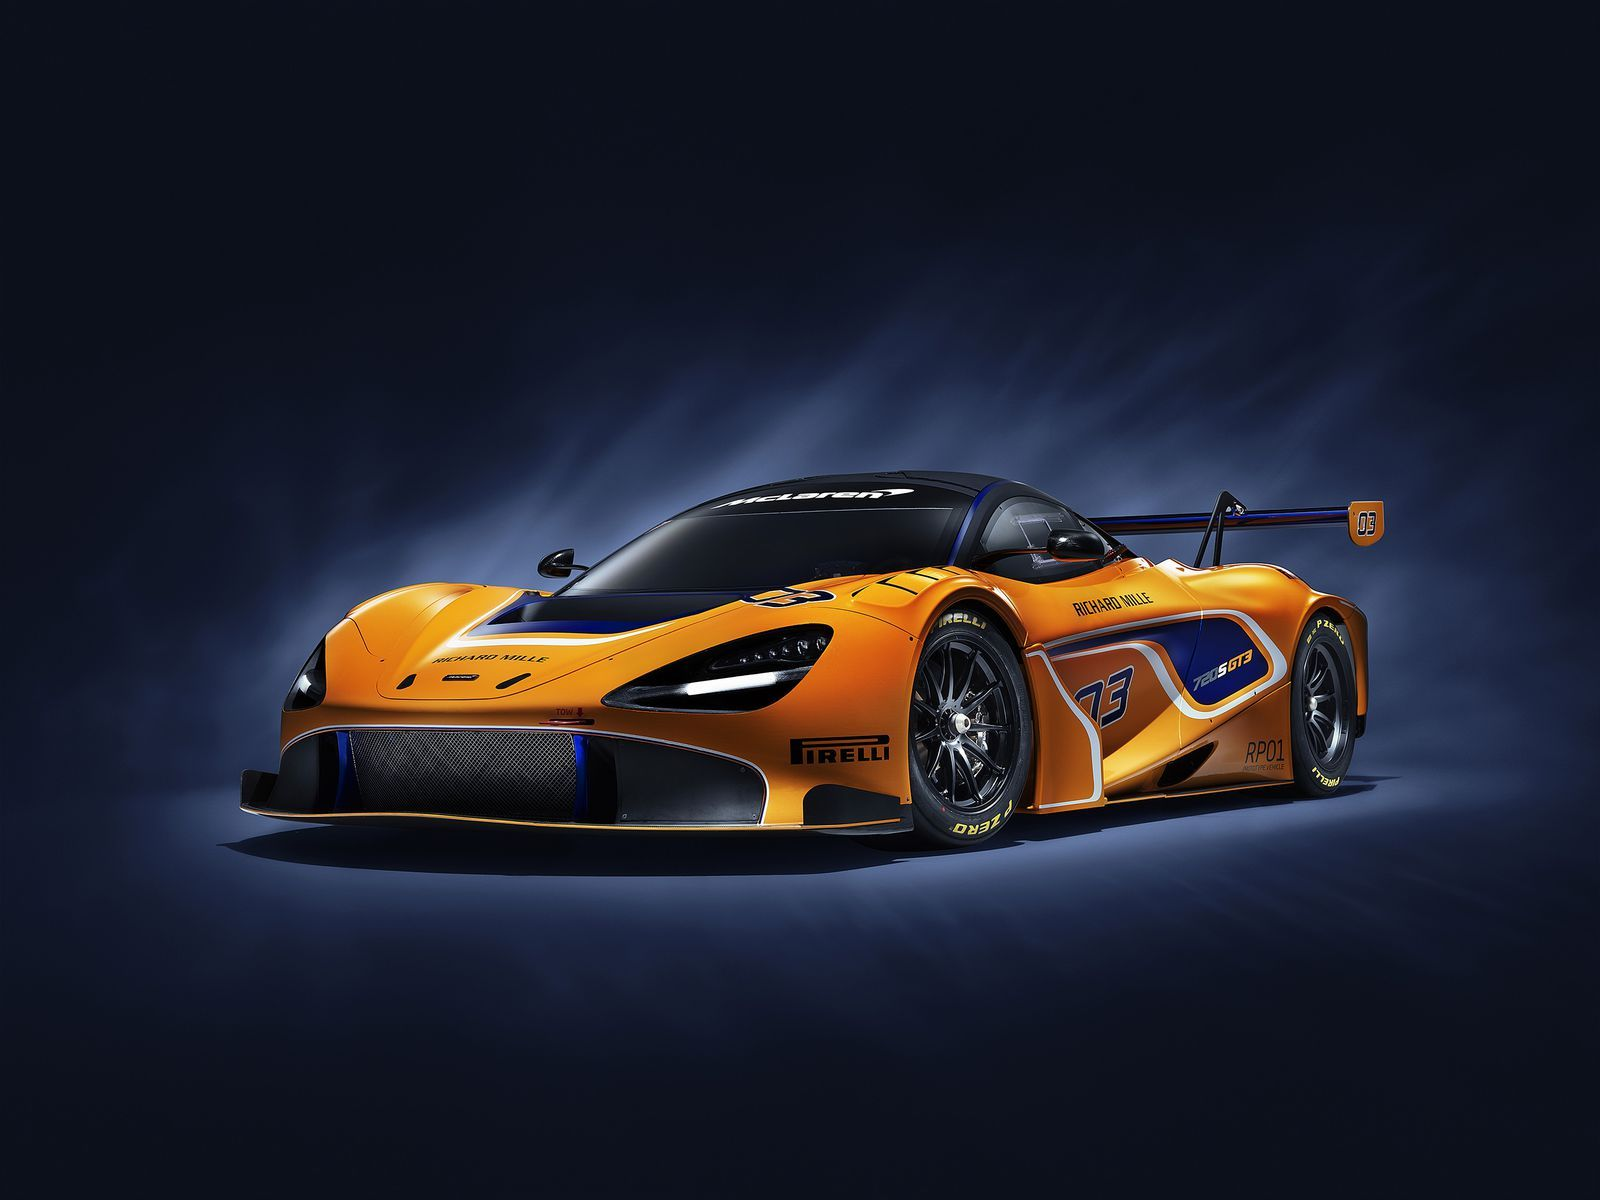 The Stunning McLaren 720S GT3 Is Here to Dominate Race